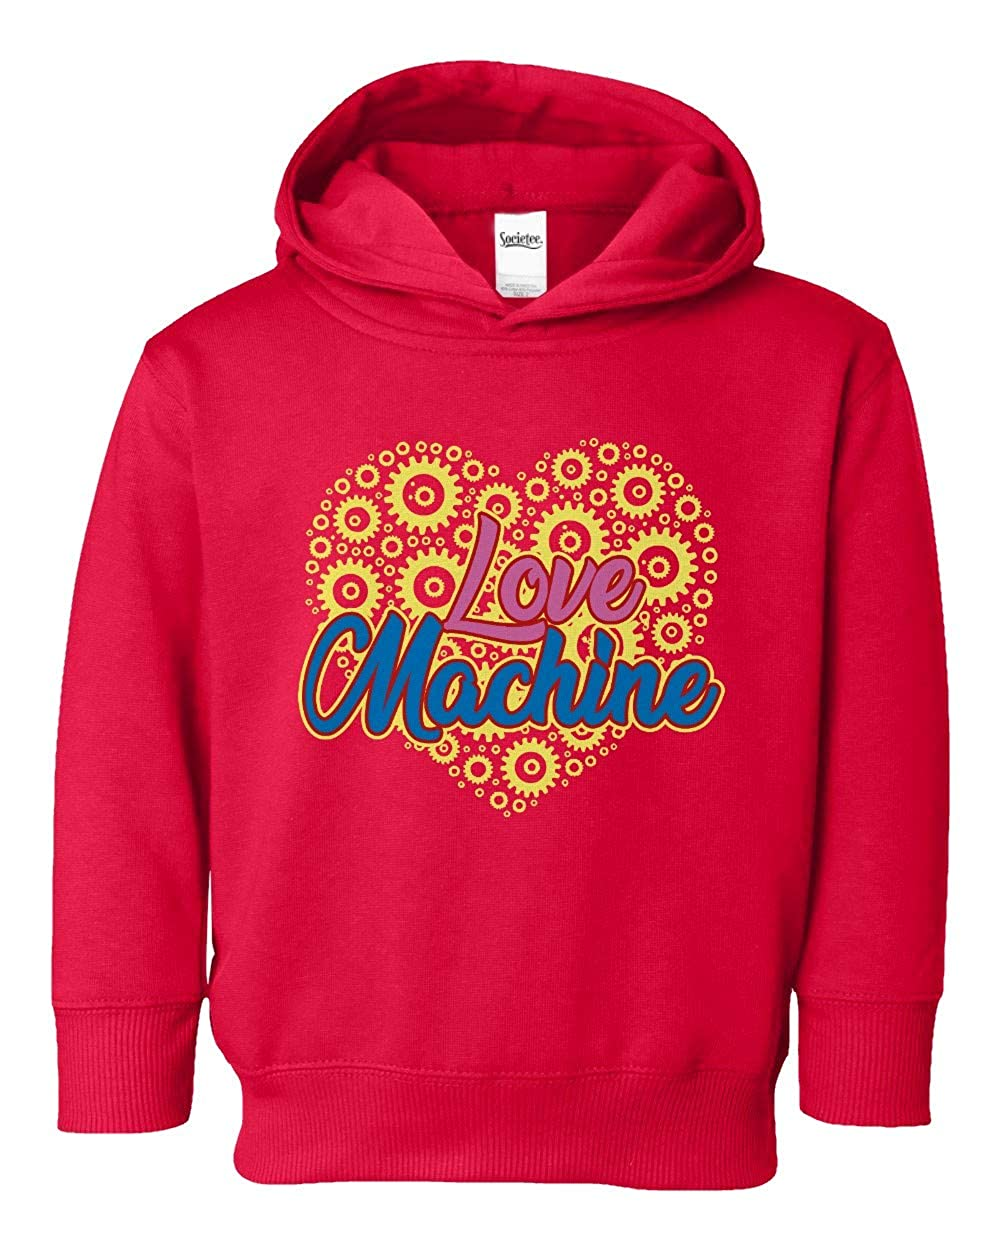 Societee Love Machine Adorable Cute Girls Boys Toddler Hooded Sweatshirt